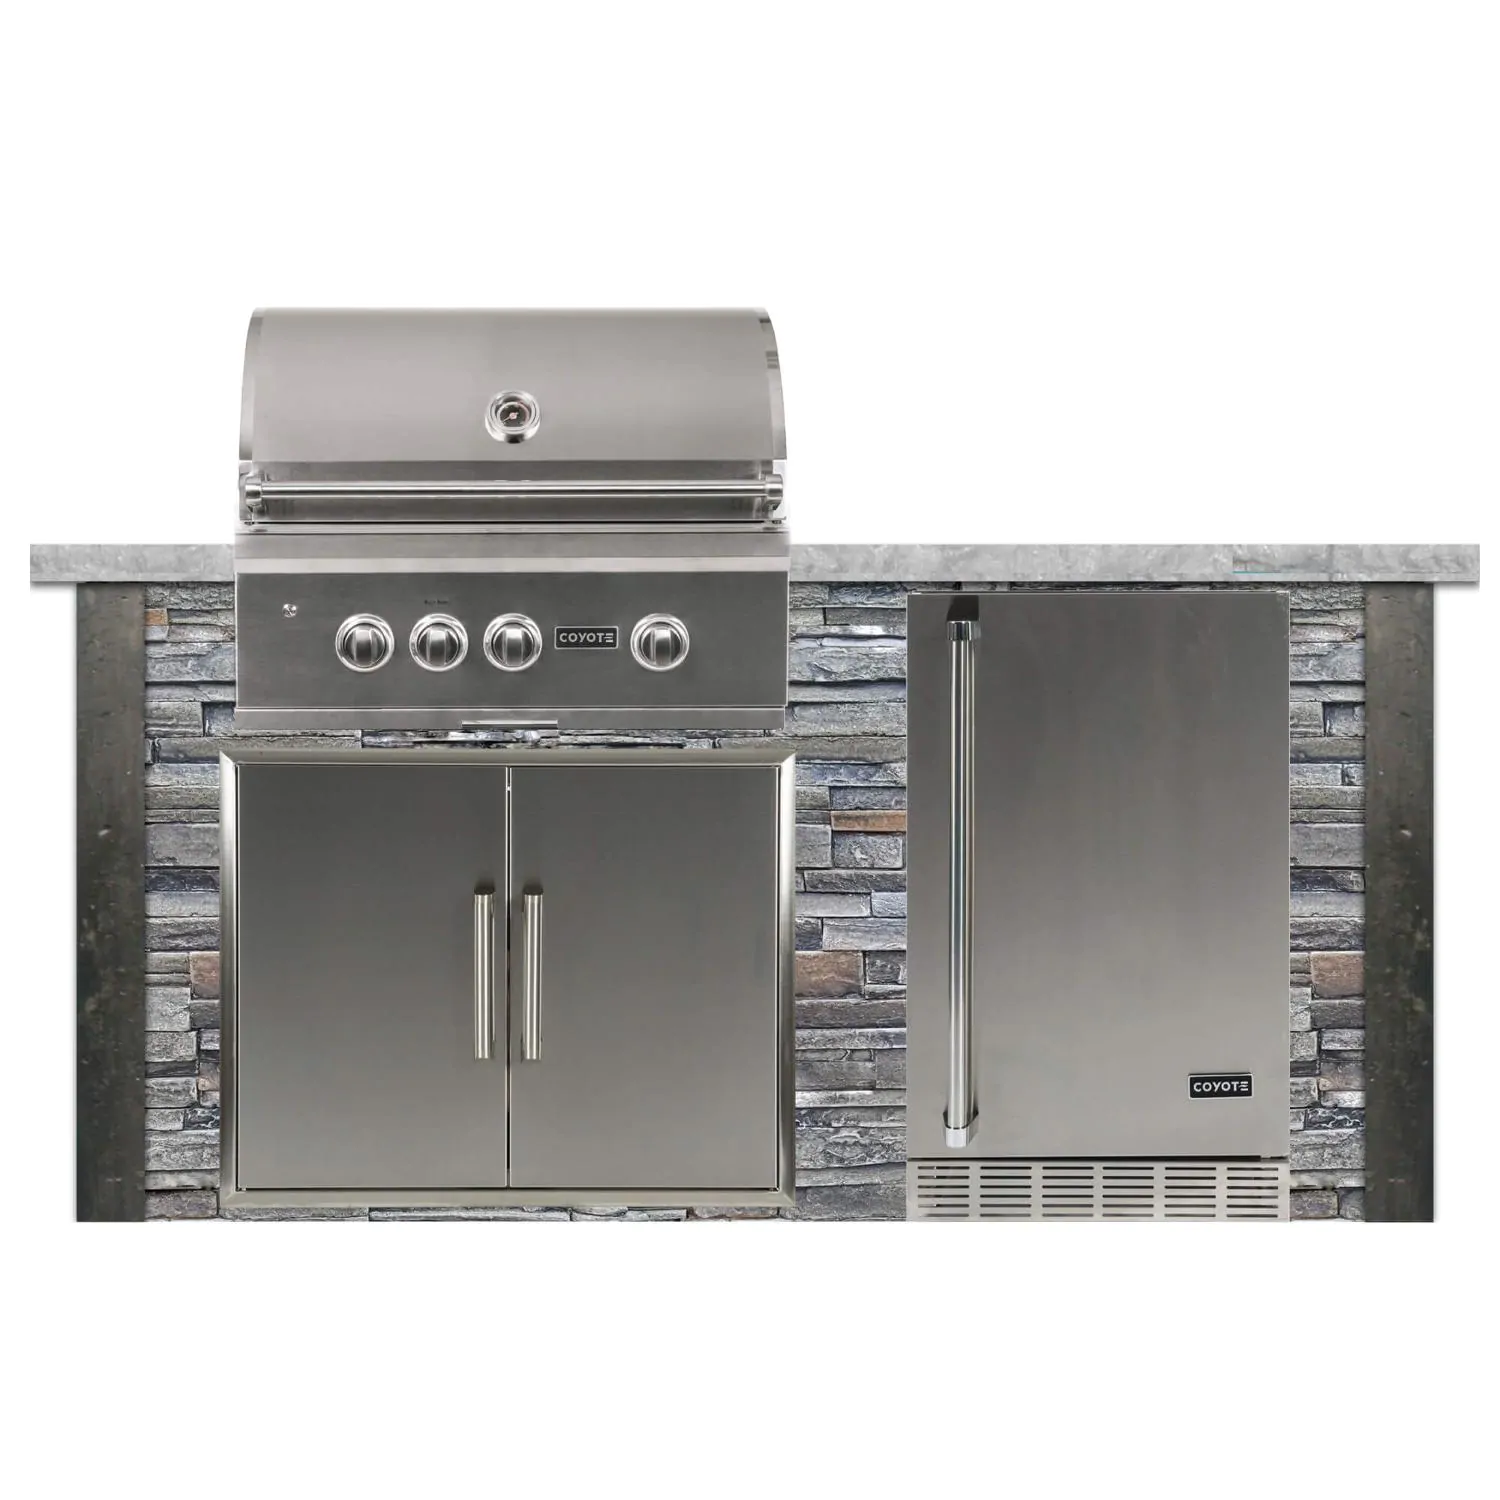 Coyote Ready-To-Assemble 6 Ft Outdoor Kitchen Island With 30-Inch S Series Propane Gas Grill - Stacked Stone/Stone Gray - RTAC-G6-P-SG-C2SL30LP